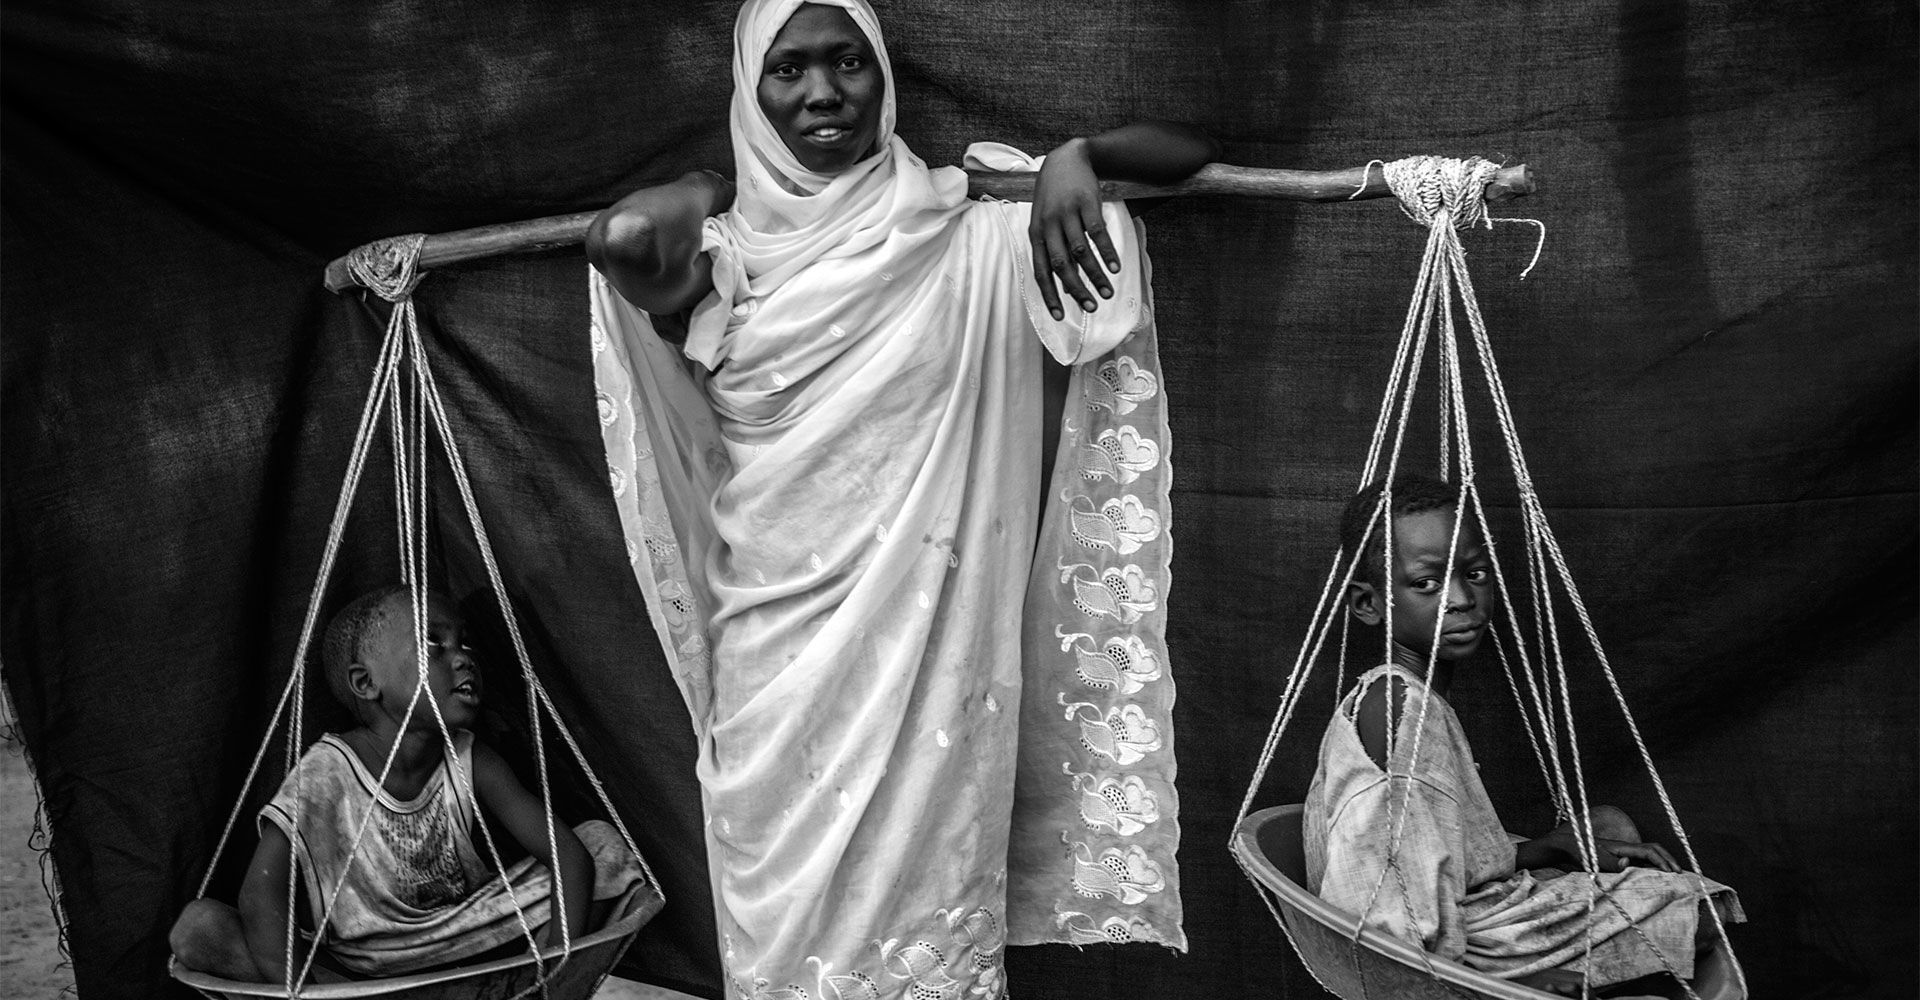 Brian Sokol: People, Not Numbers: Using Photography to Humanize the Global Refugee Crisis